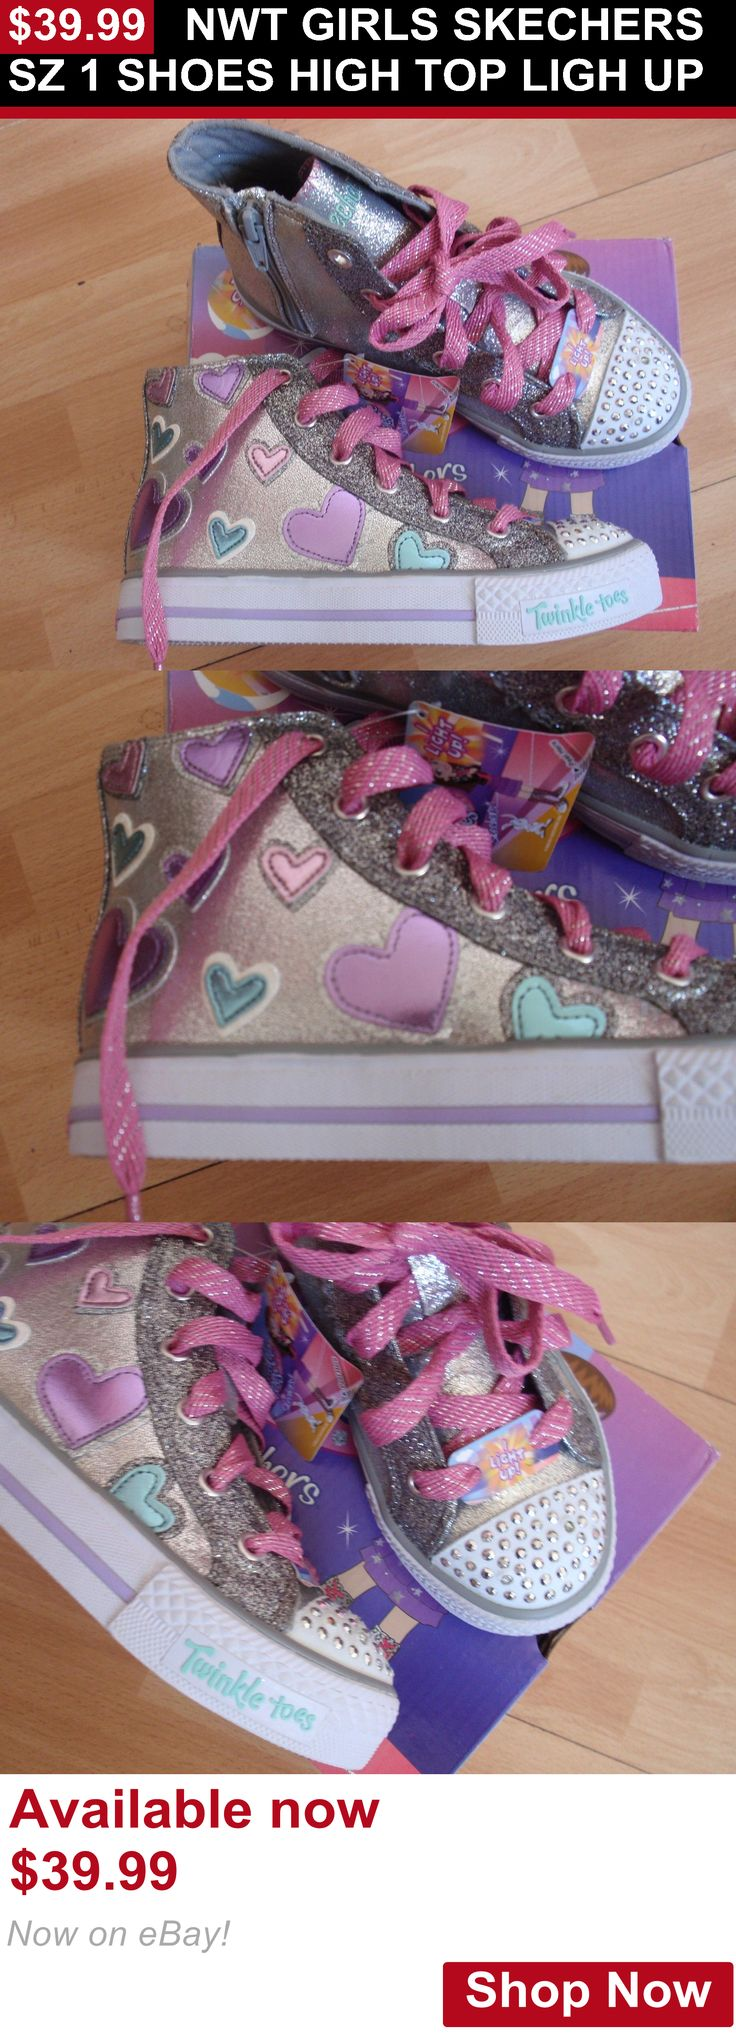 Children girls clothing shoes and accessories: Nwt Girls Skechers Sz 1 Shoes High Top Ligh Up BUY IT NOW ONLY: $39.99